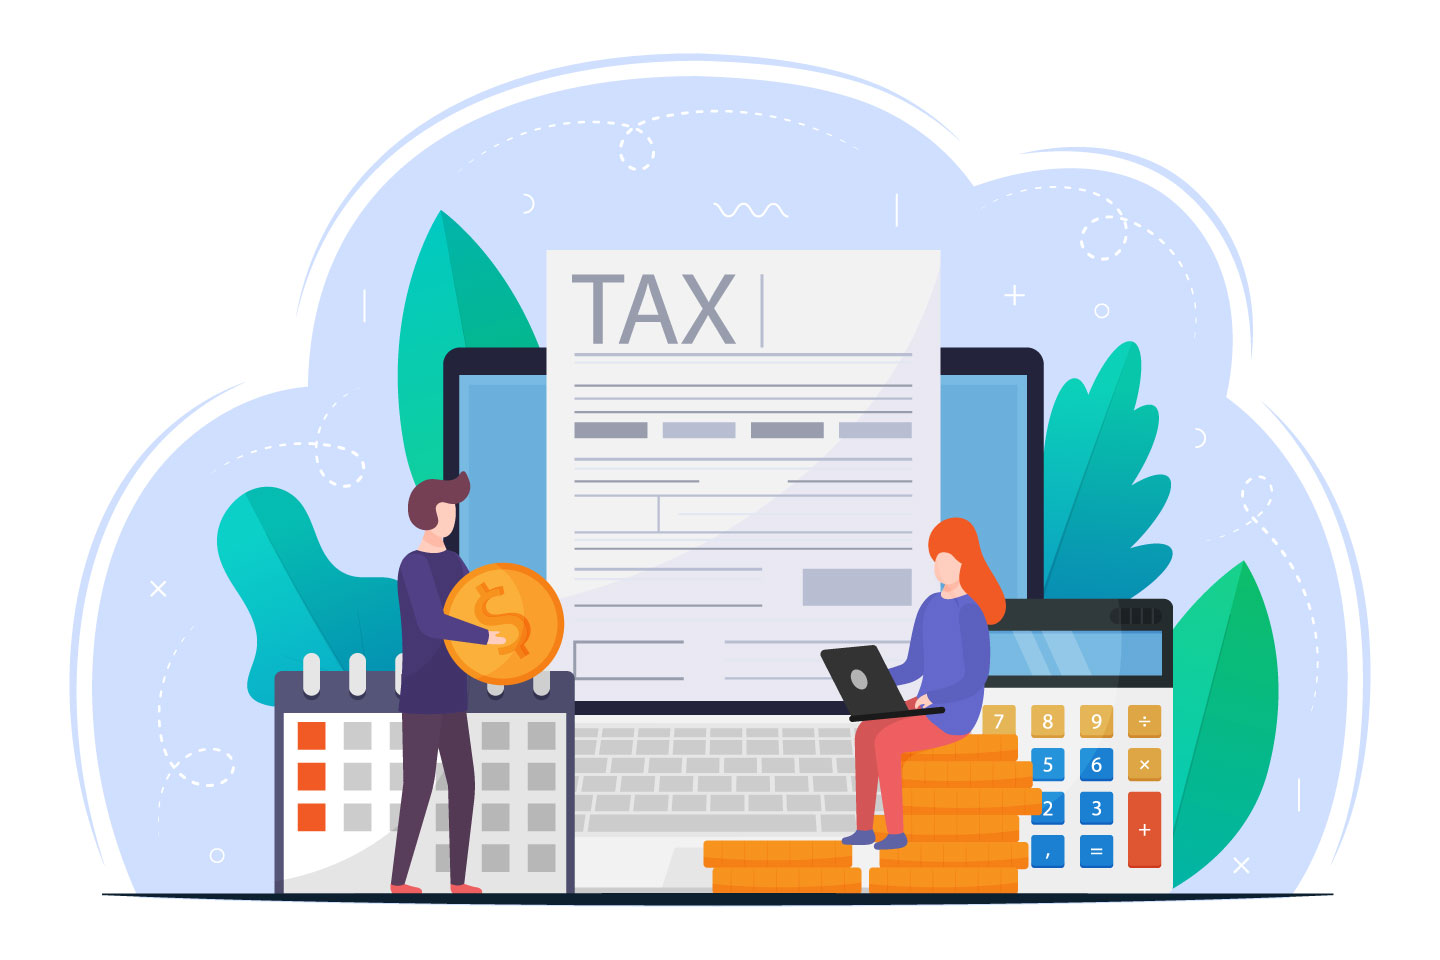 Online Tax Payment Vector Design Concept